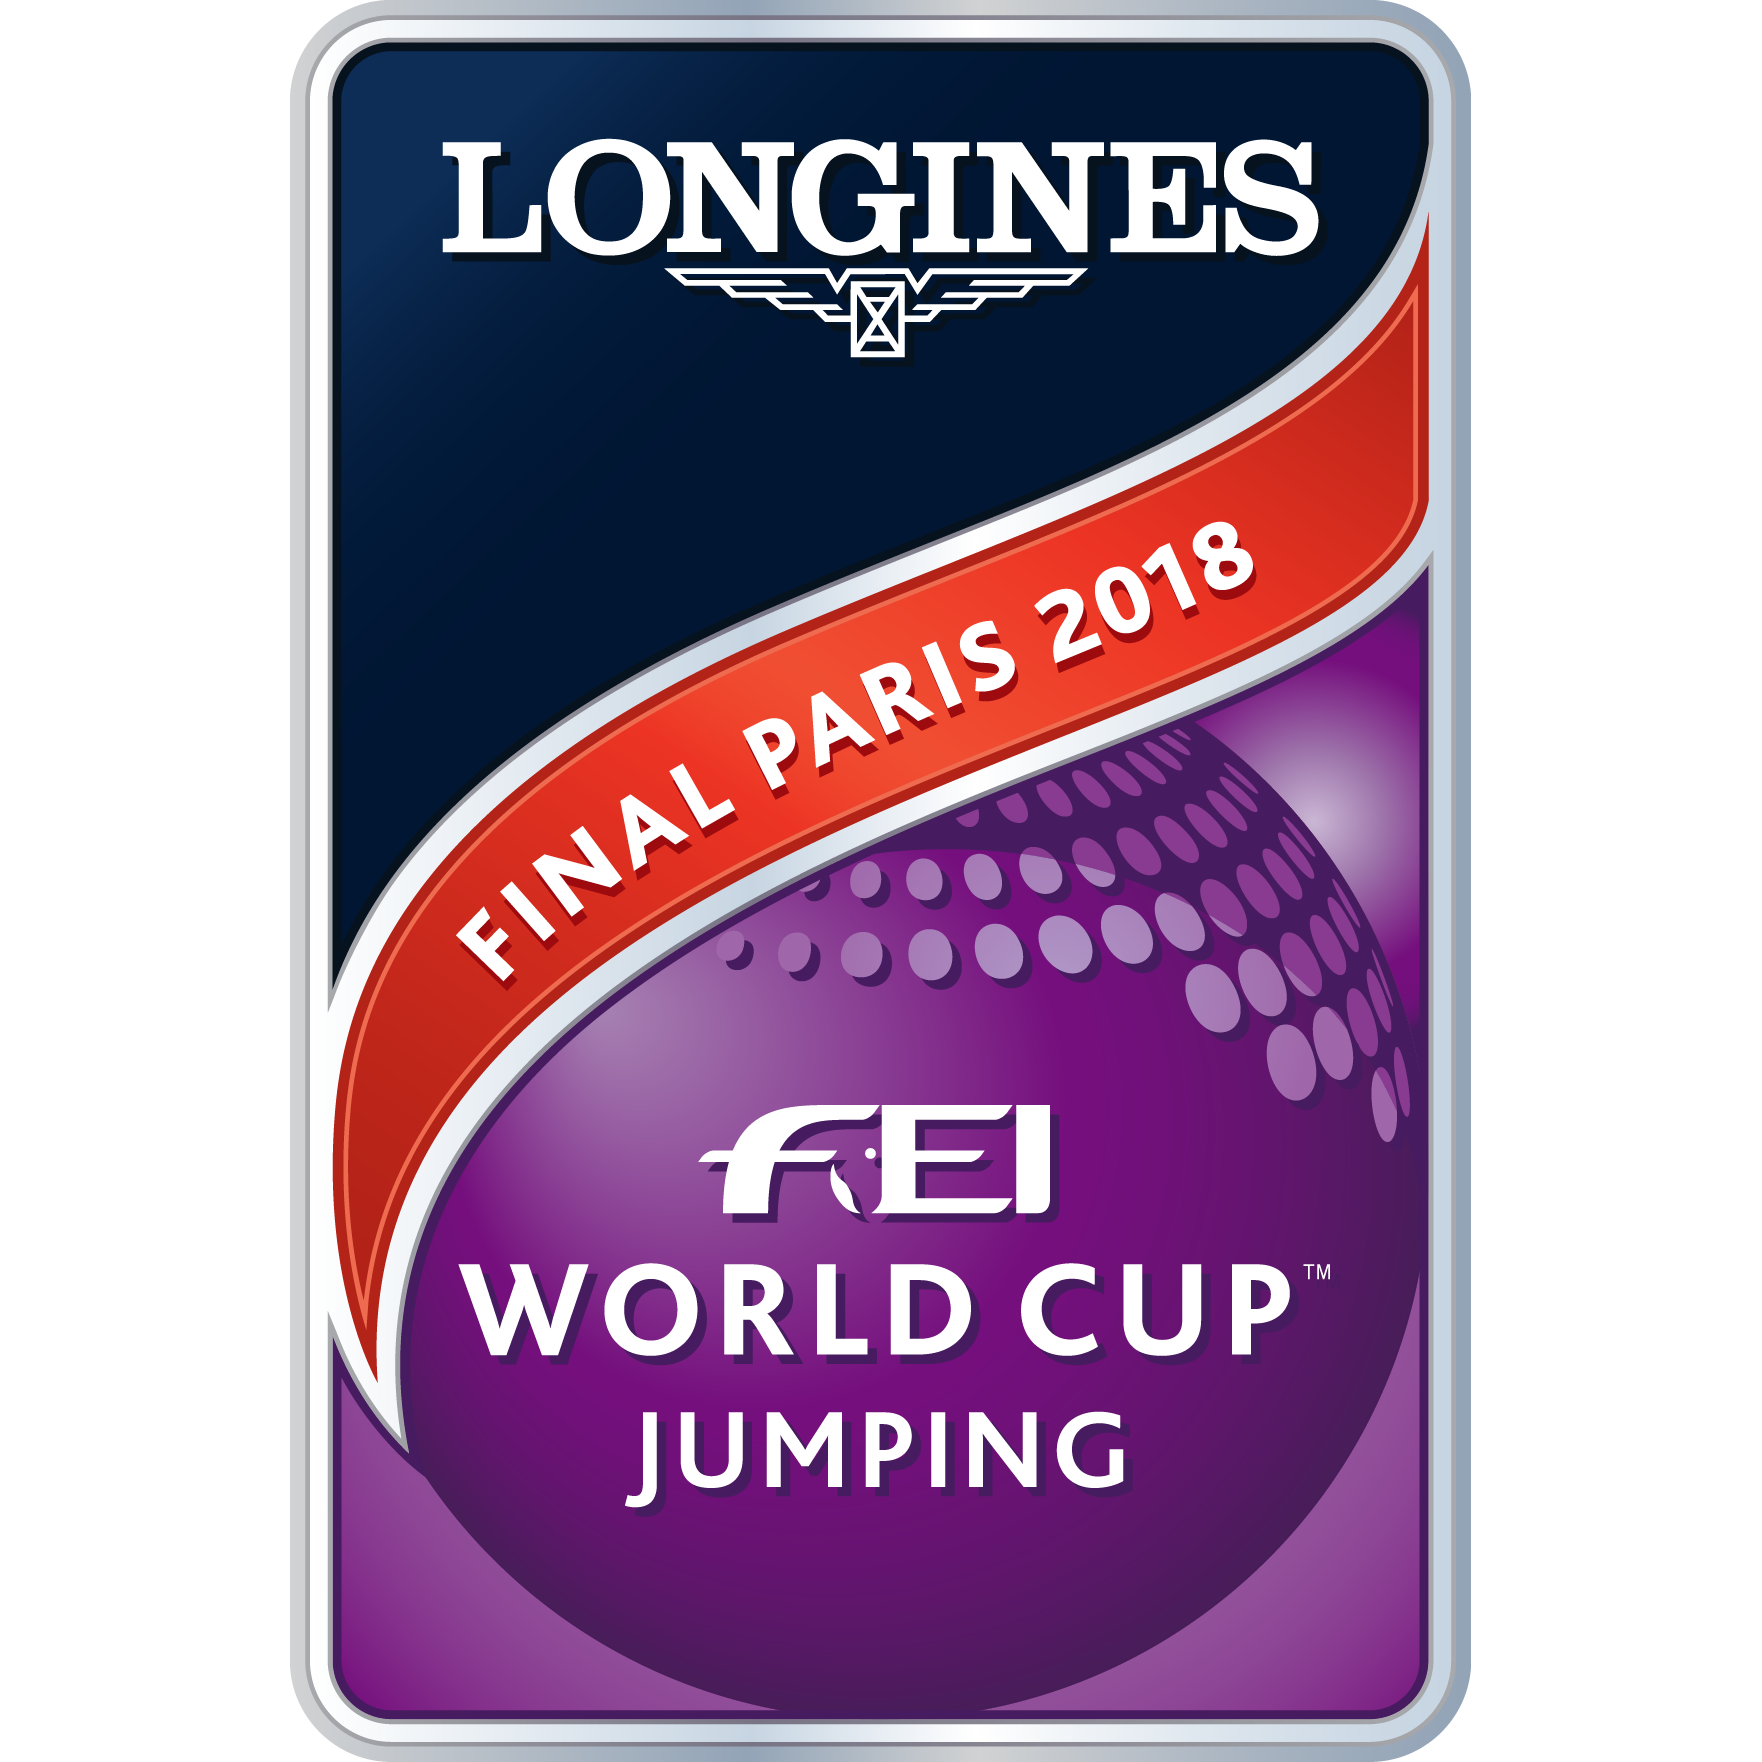 2018 Equestrian World Cup - Final